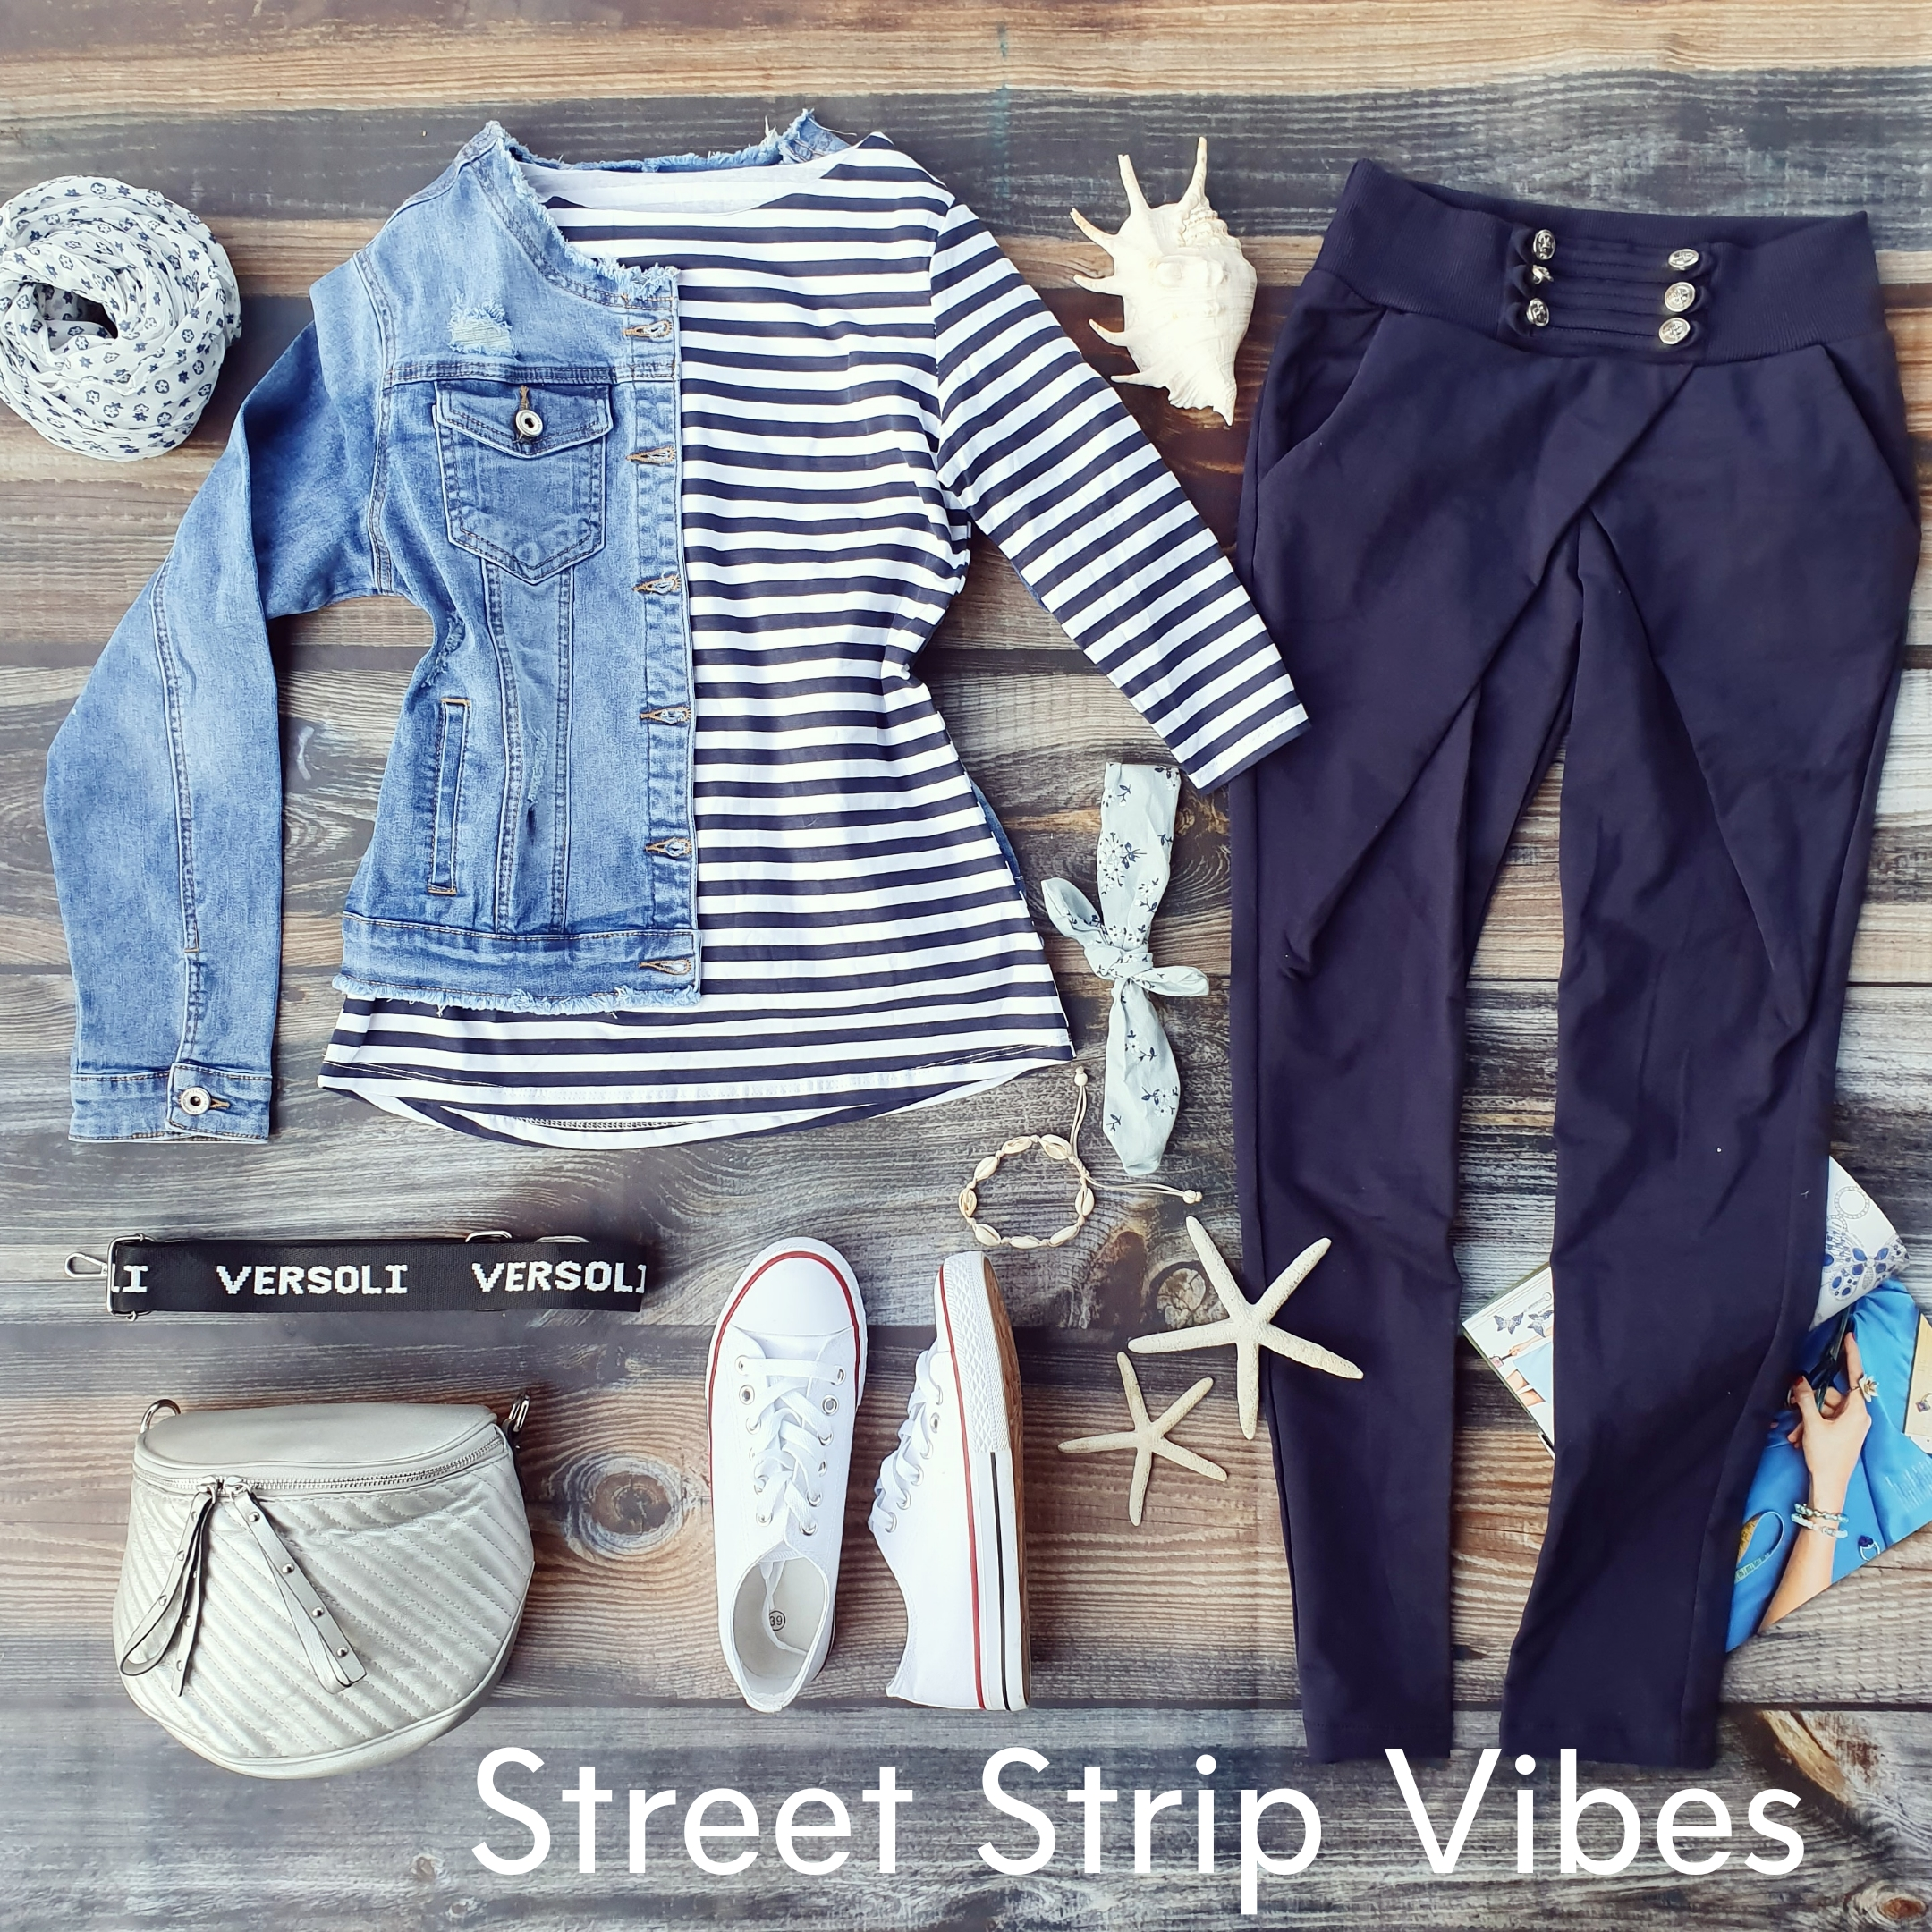 Street Strip Vibes